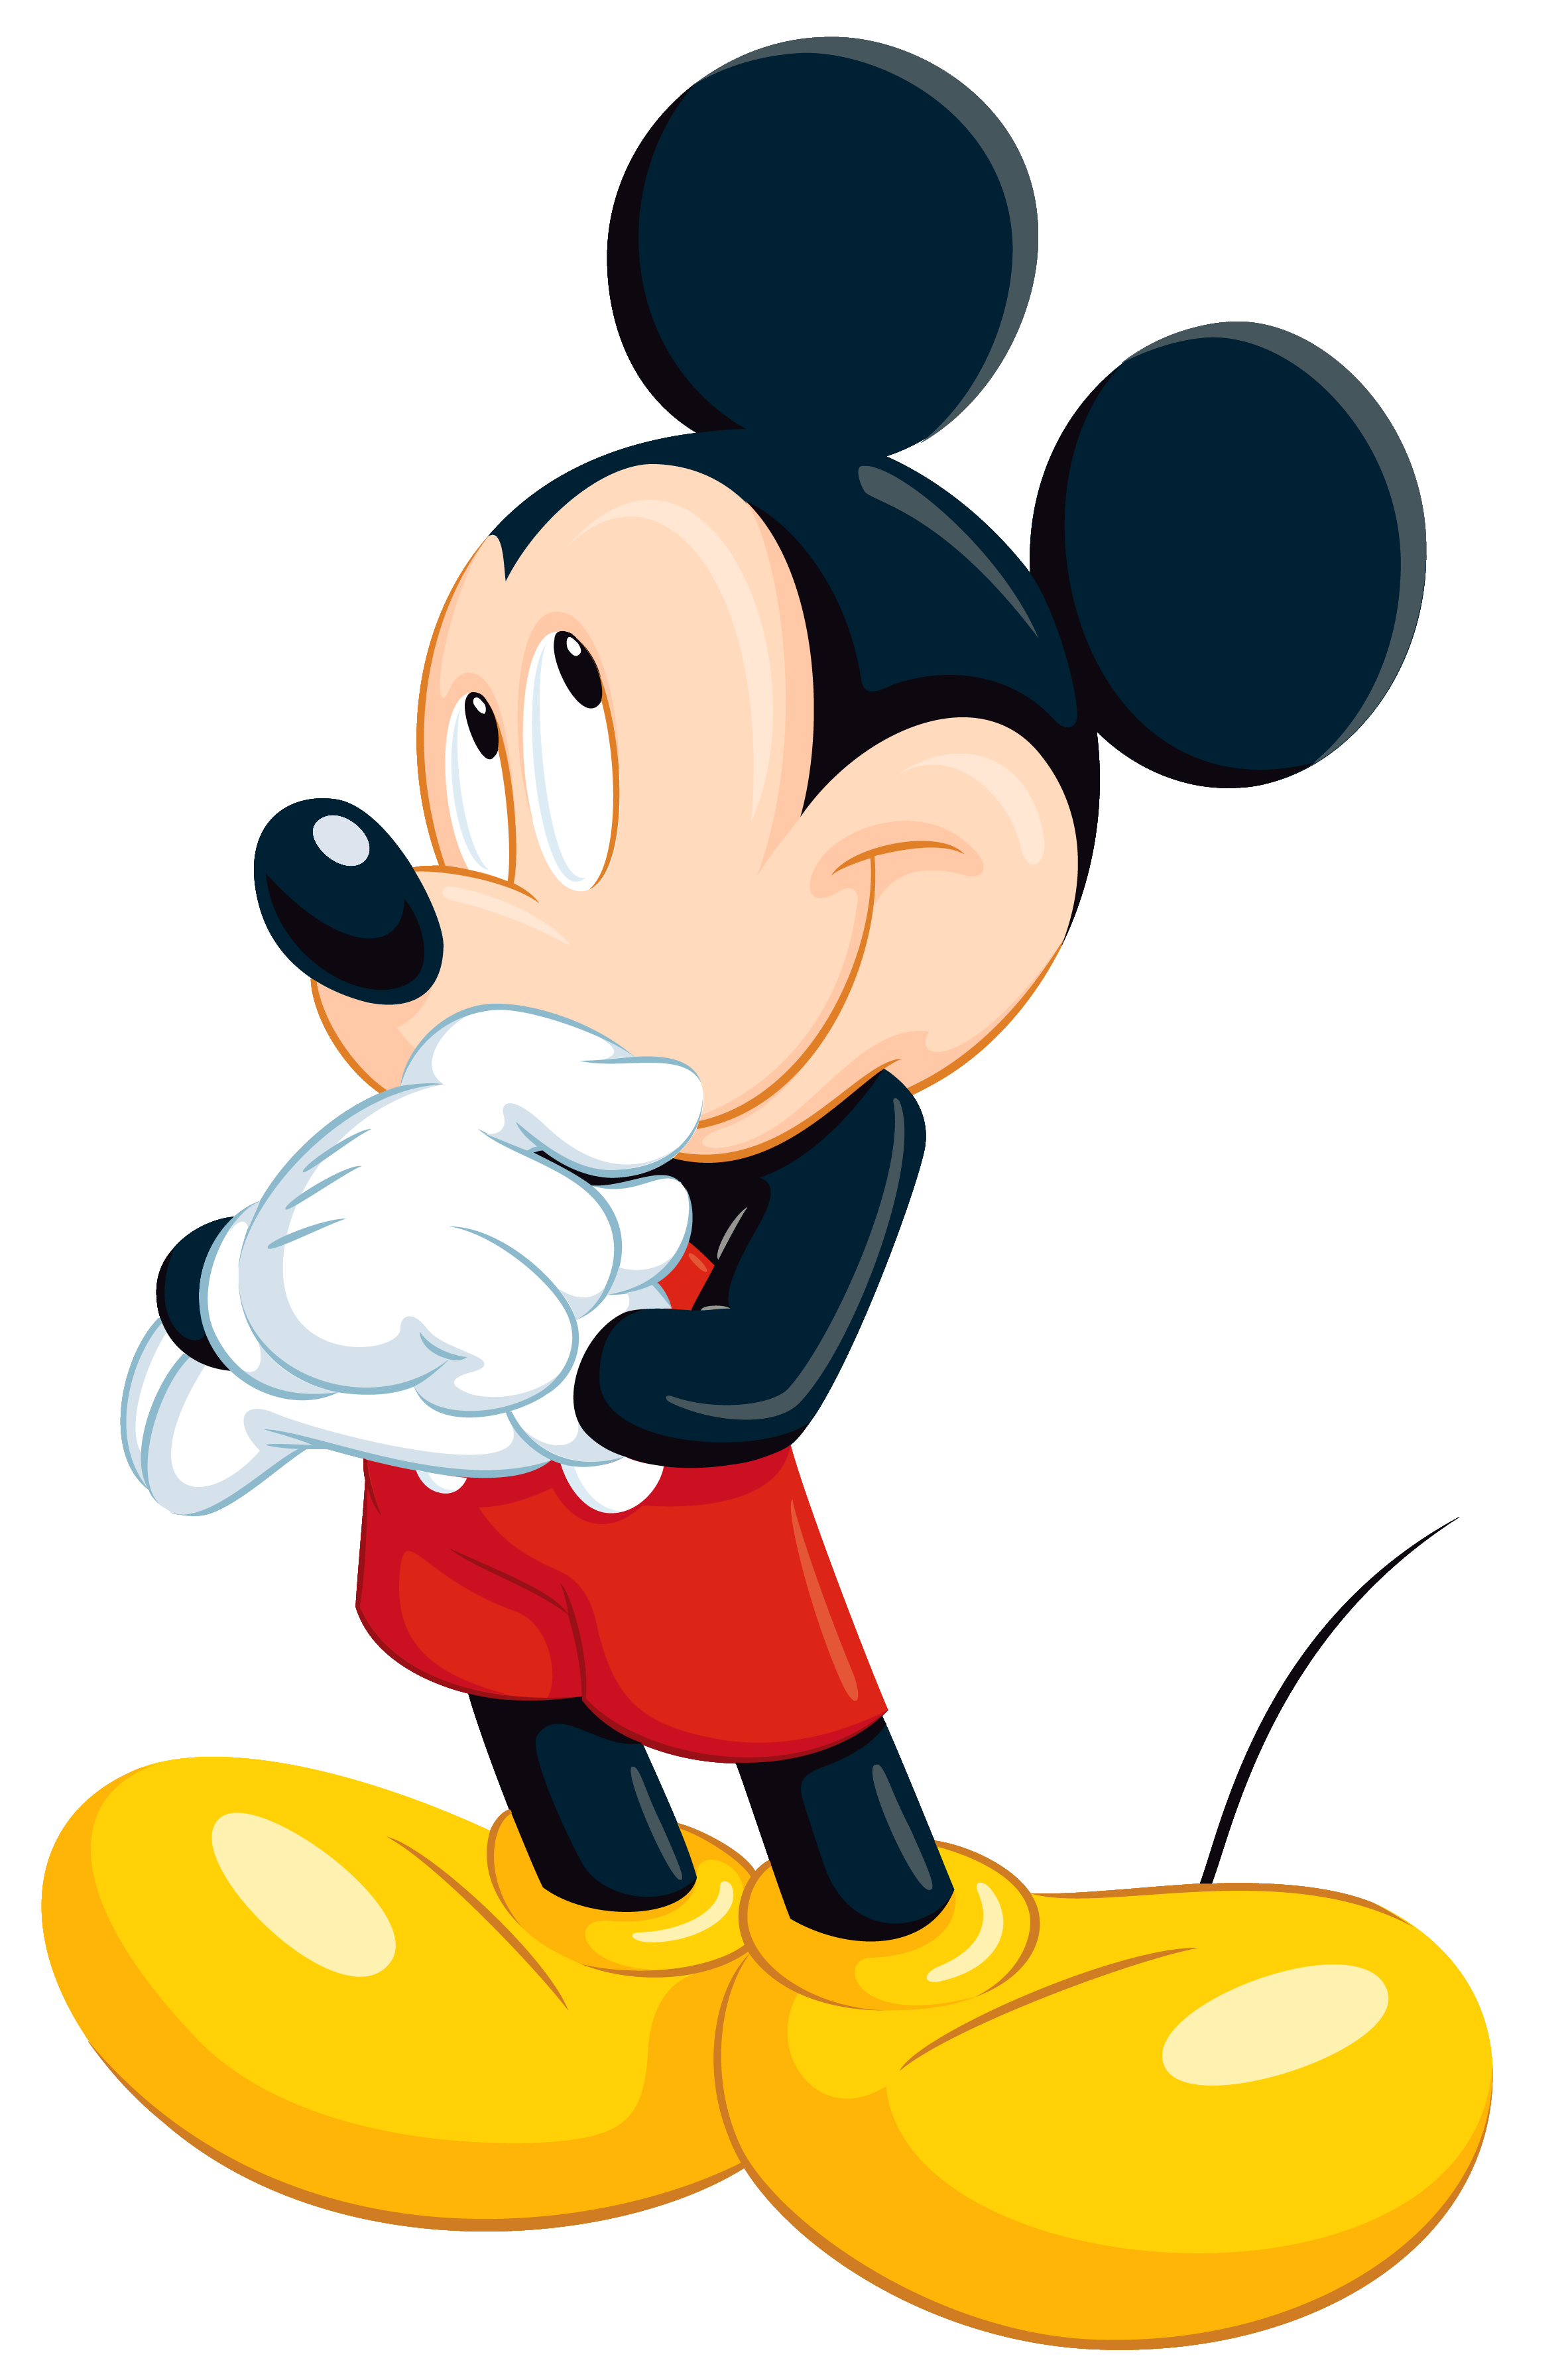 Mickey Mouse clipart transparent background Image size PNG Clipart